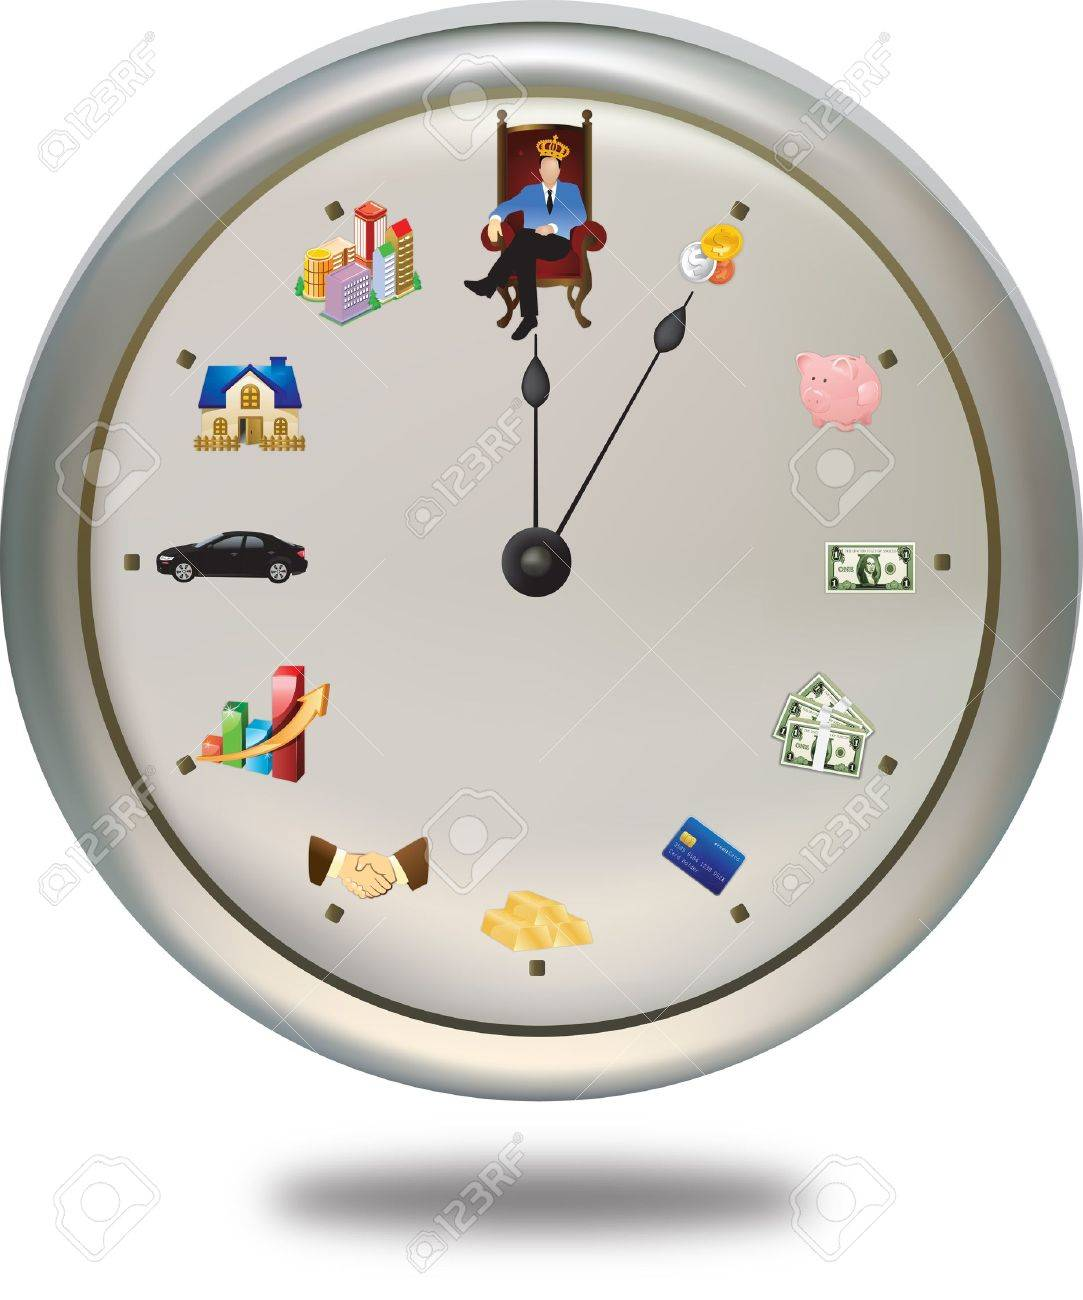 Special Clock Time Is Money This Special Clock Shows How A Person Can Achieve